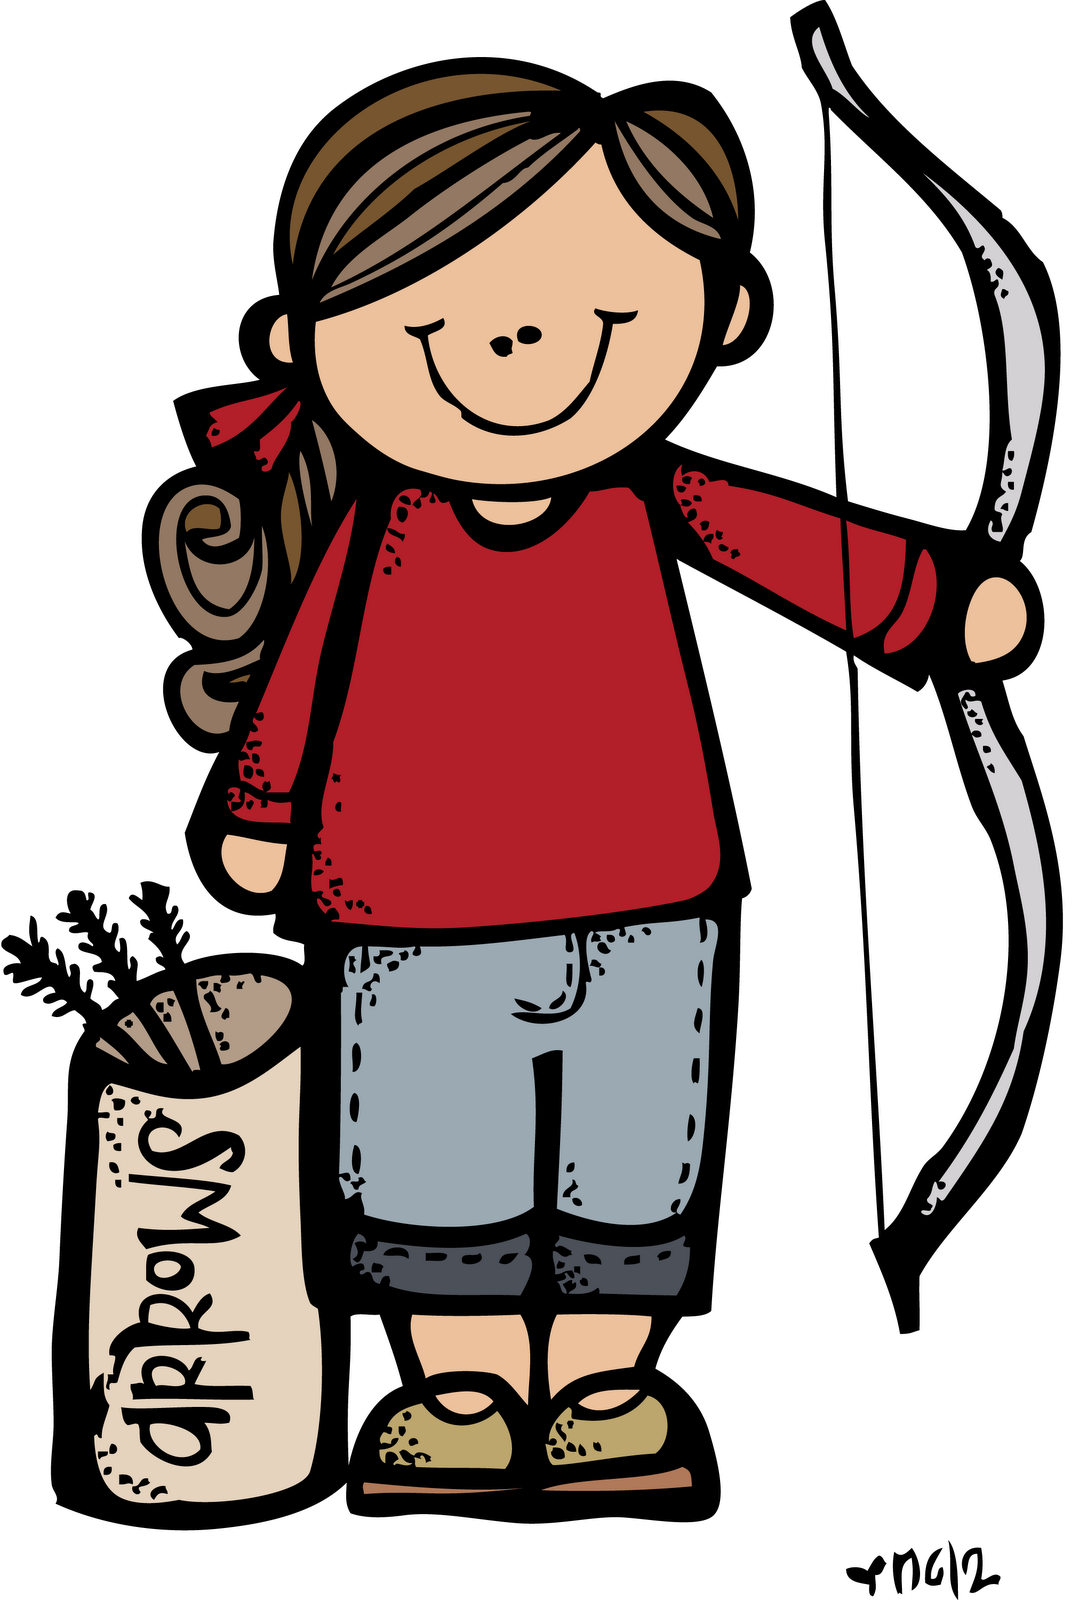 Hungry clipart little girl. Illustrating girls camp illustrations